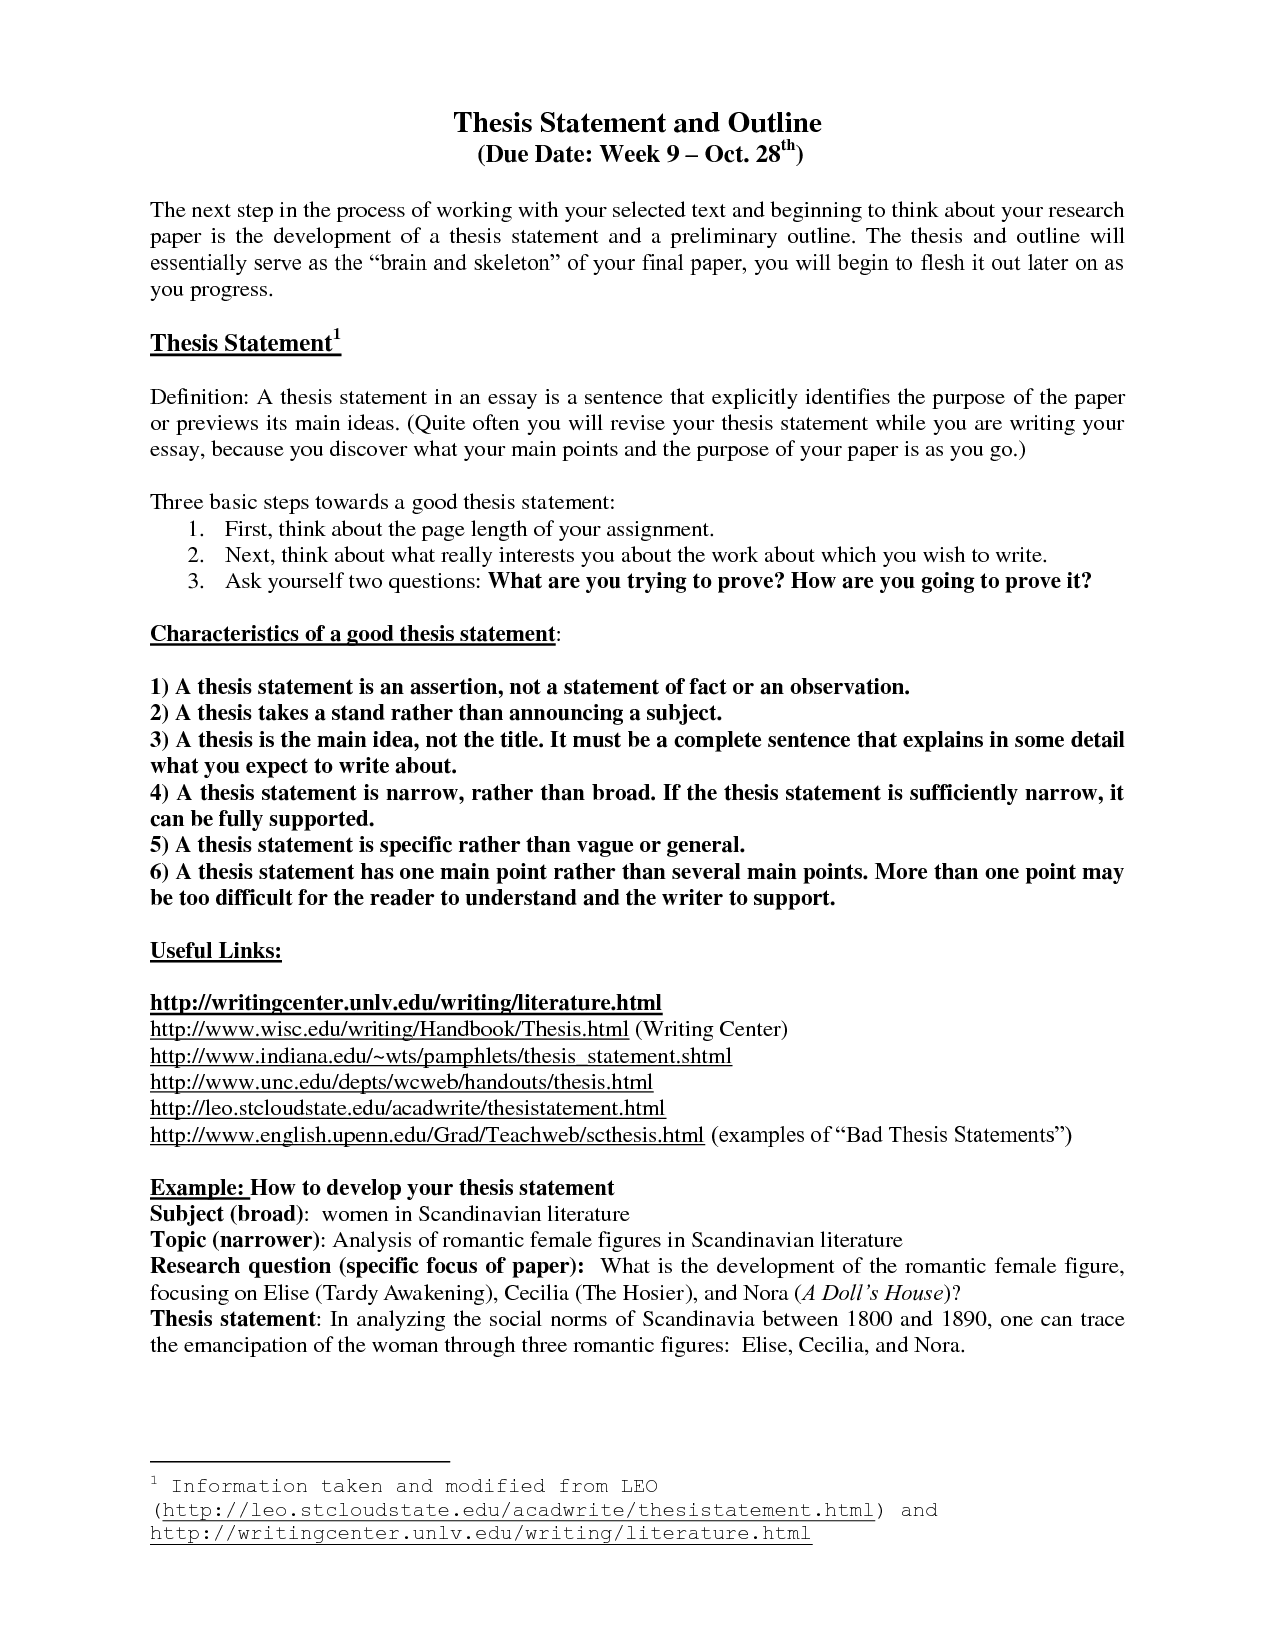 Example Of An Exploratory Essay Thesis Statement Outline Samples And Statements For Argumentative Thesis  Statement Outline Samples And Statements For Argumentative Compare Contrast Essays also Borderline Personality Disorder Essay Thesis Statement Essays Thesis Statement Outline Samples And  Controversial Essay Topics For College Students